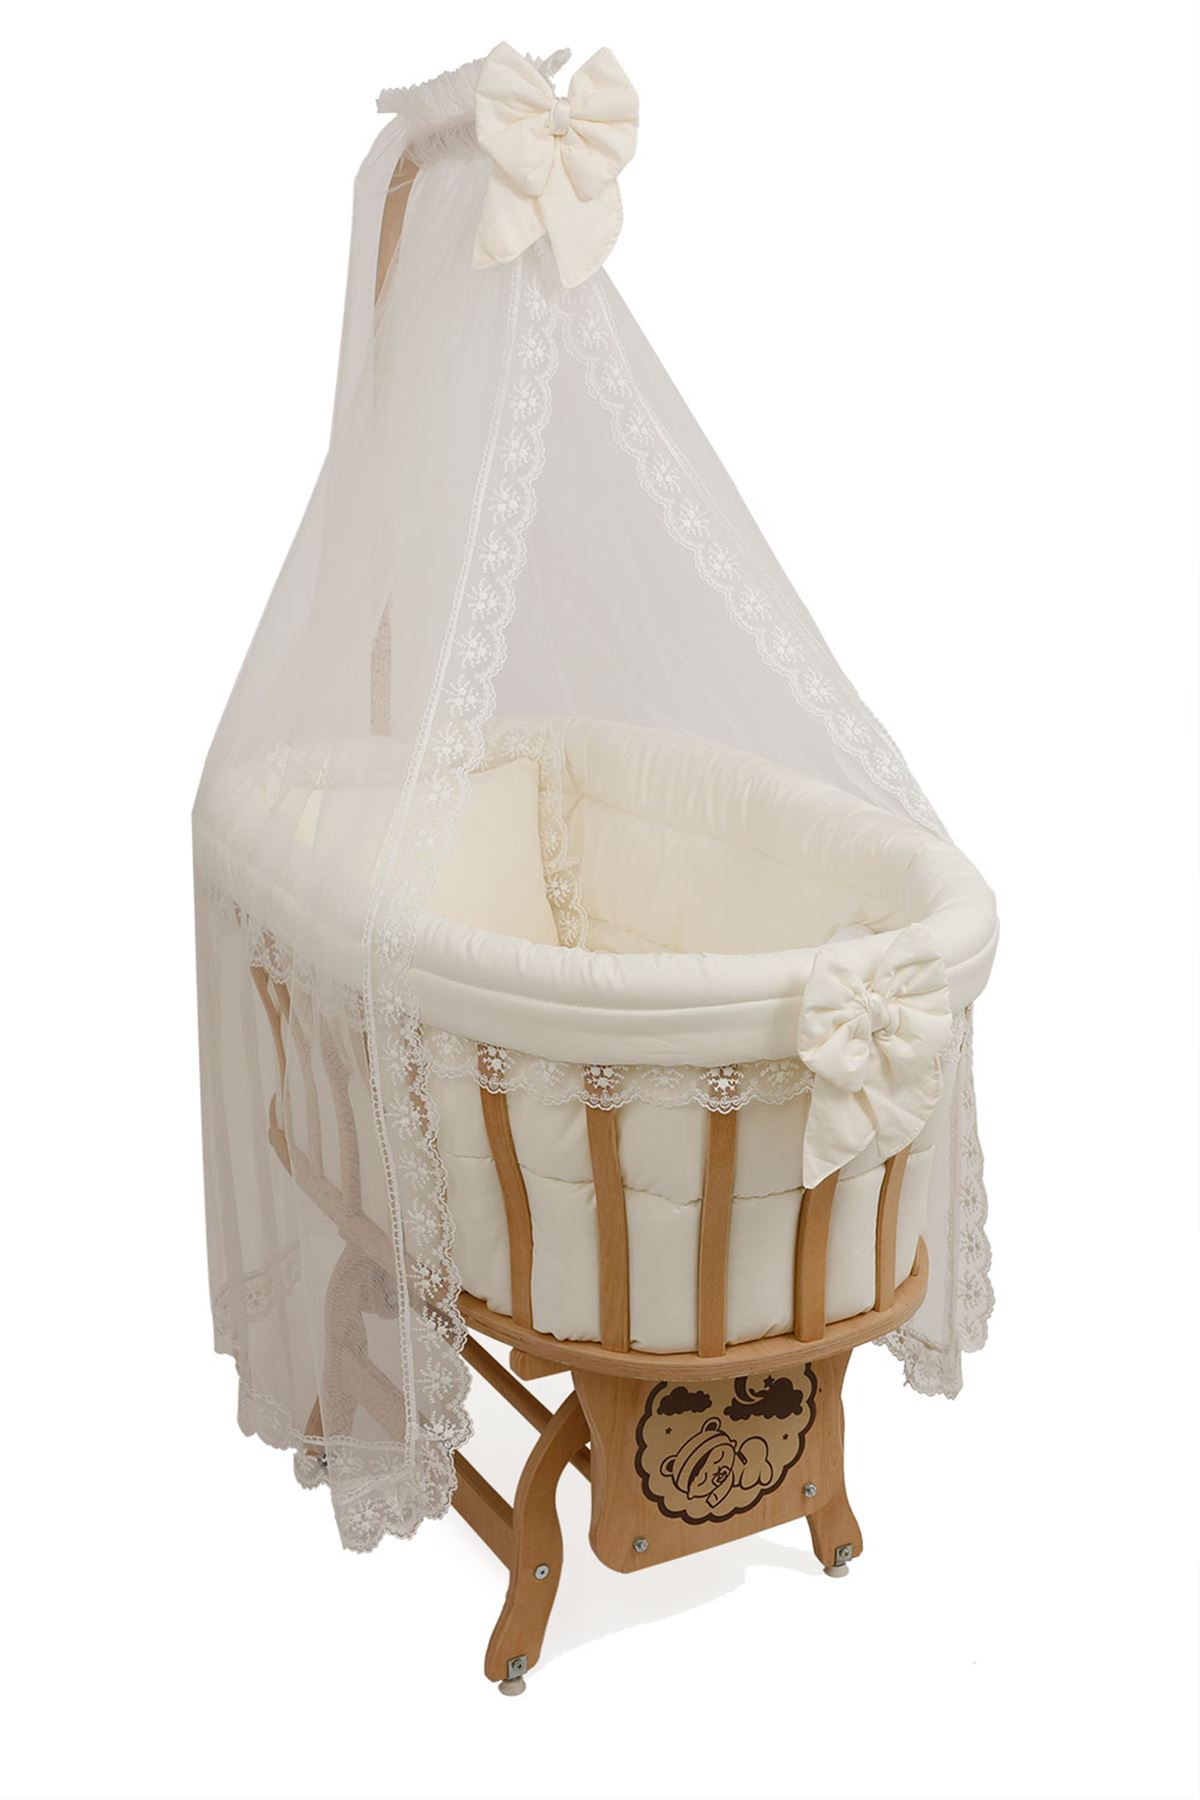 Wooden Baby Crib - Cream French Lacy Sleeping Set